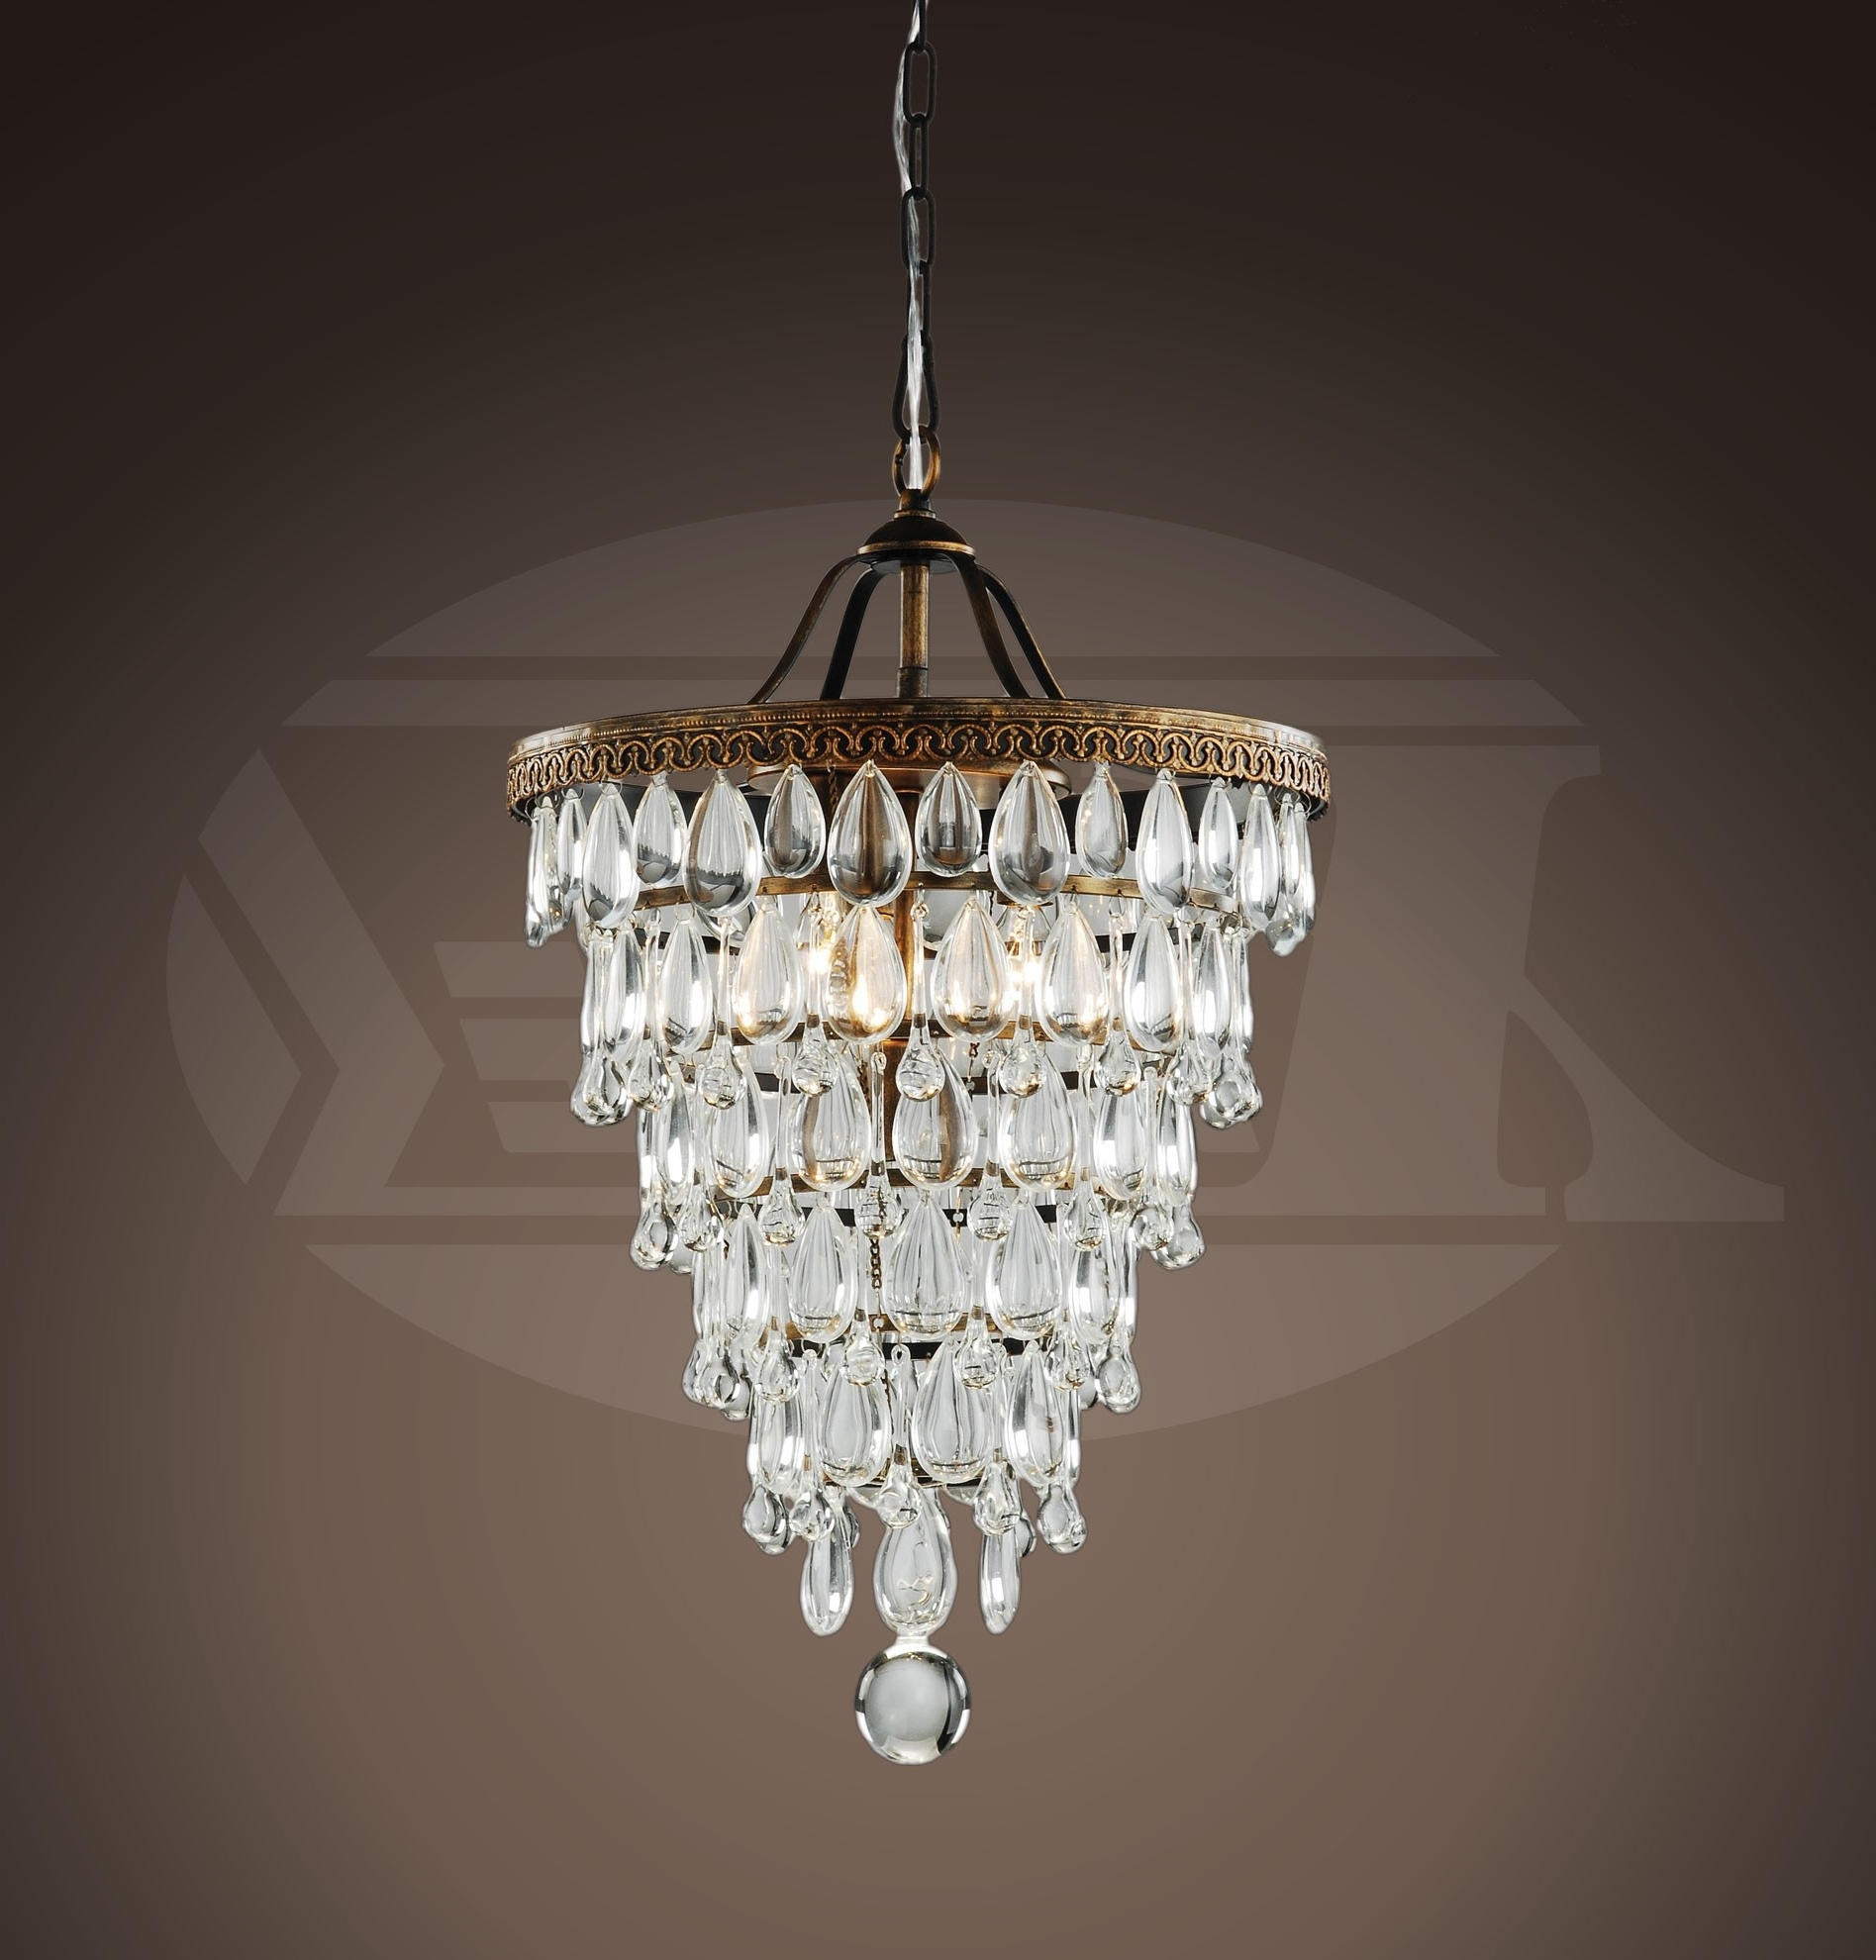 Annabelle Crystal Cone Shape 4 Light Antique Copper Glass Drop Throughout Most Current Copper Chandelier (View 2 of 20)